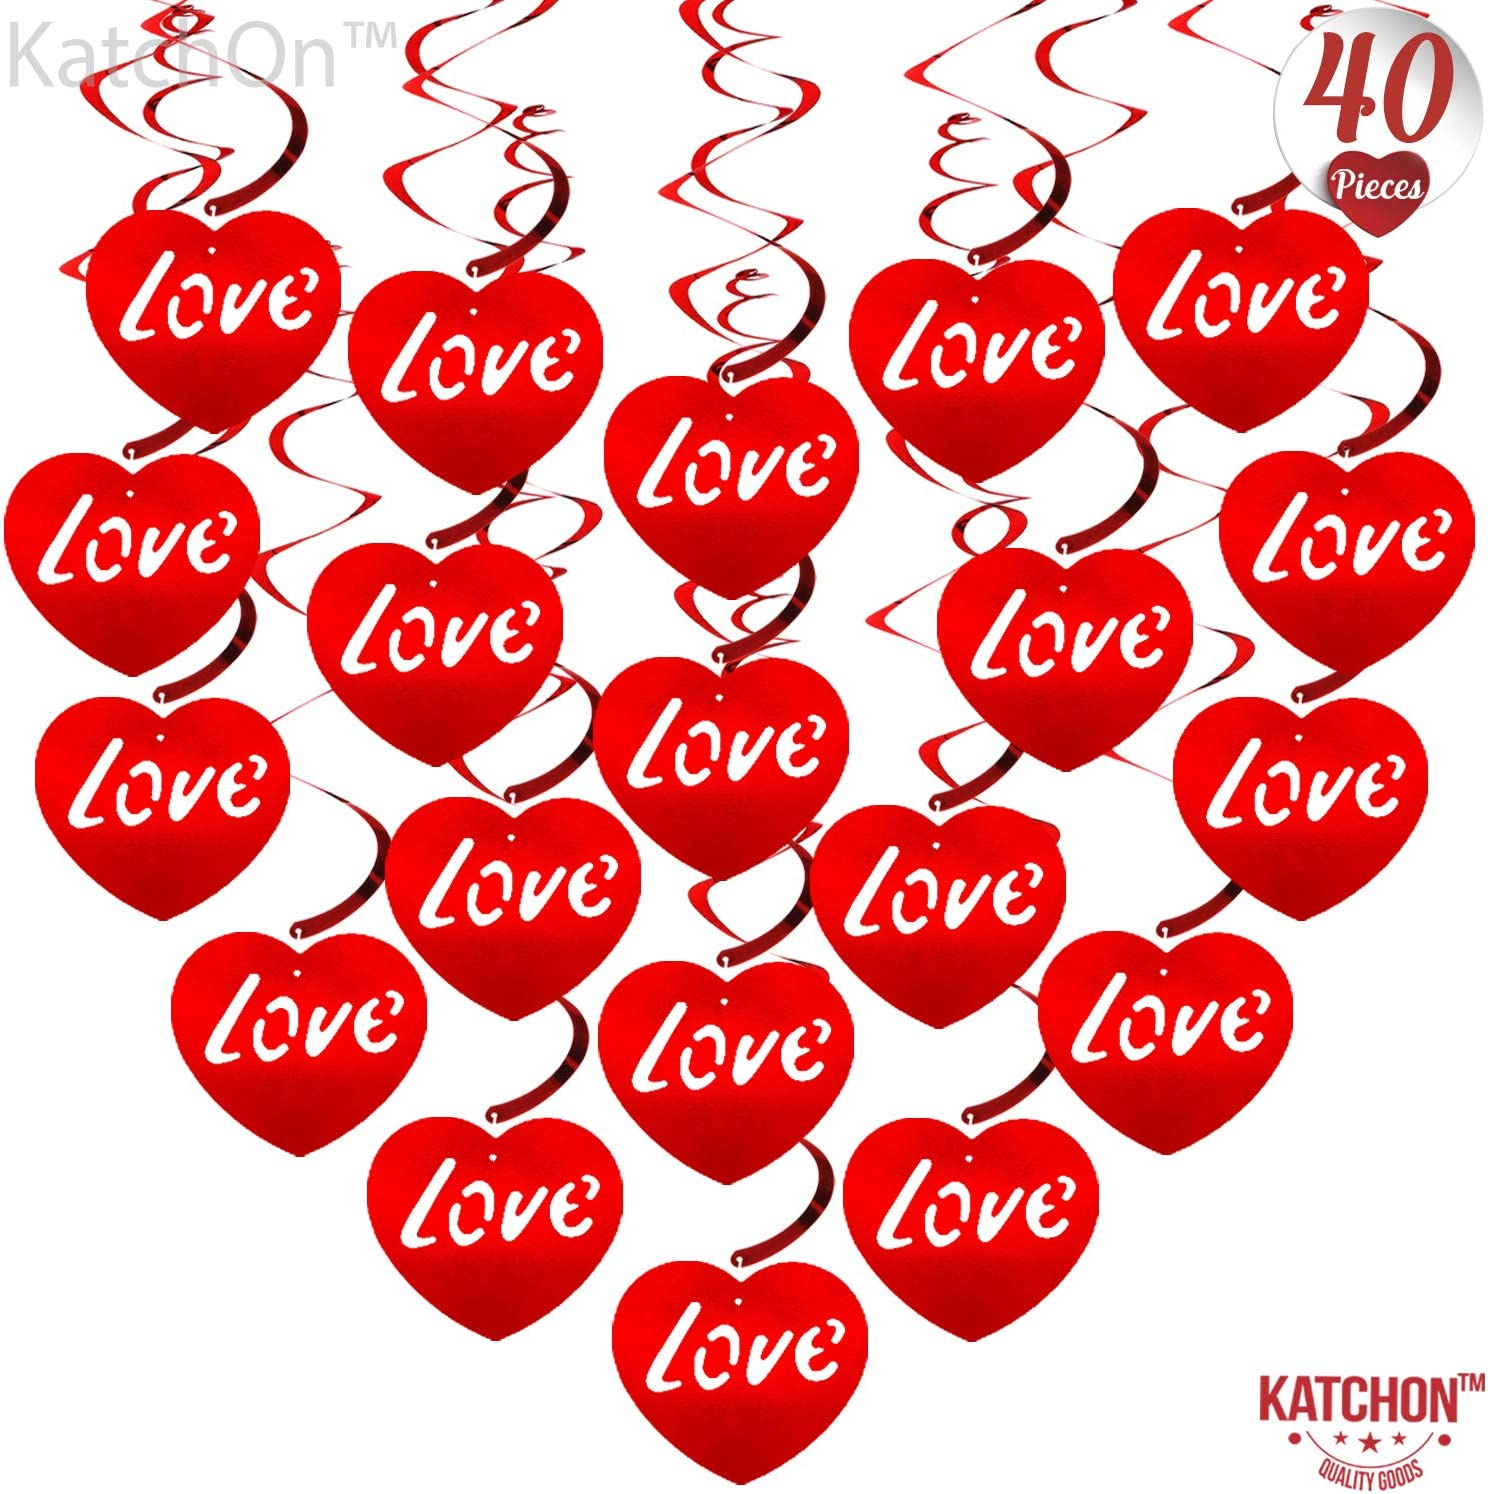 Valentines Day Hanging Decorations - Pack of 40 | Valentines Day Decorations | Valentines Party Love Hanging Swirls Decorations | Valentines Day Decorations Ceiling for Room | Valentines Party Decor